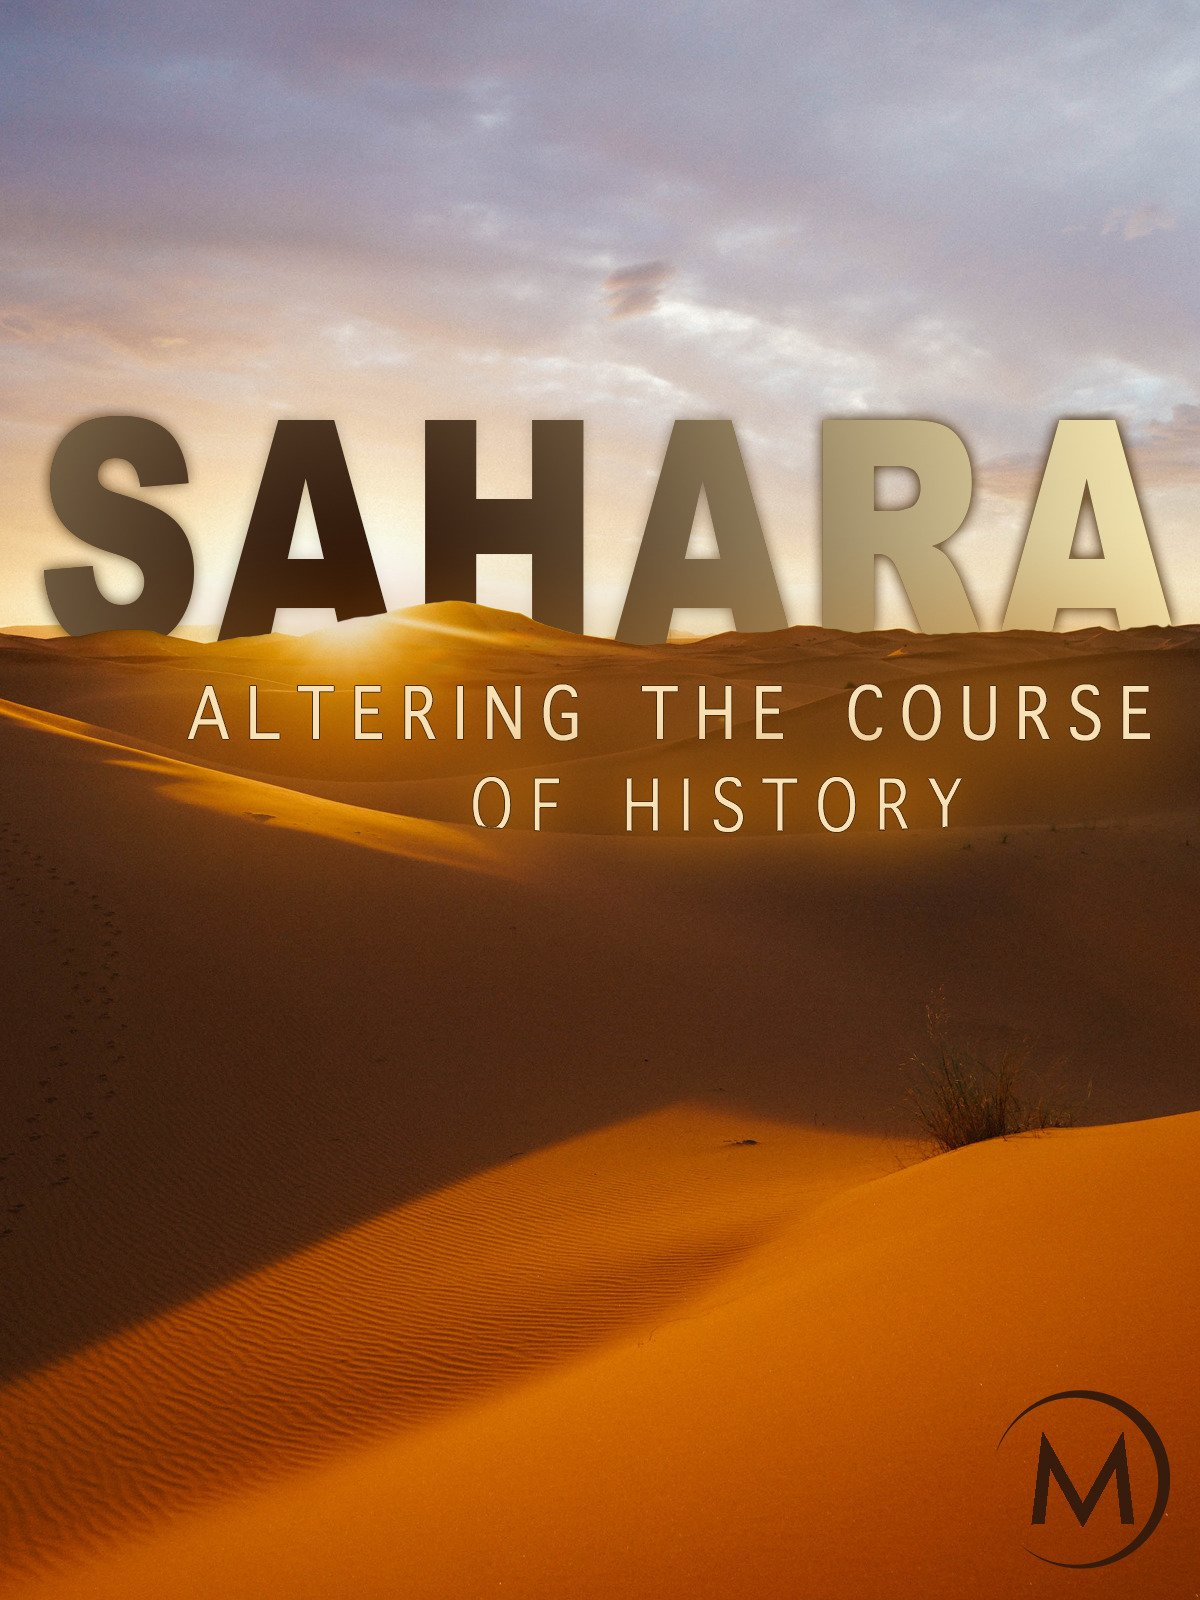 Sahara: Altering the Course of History